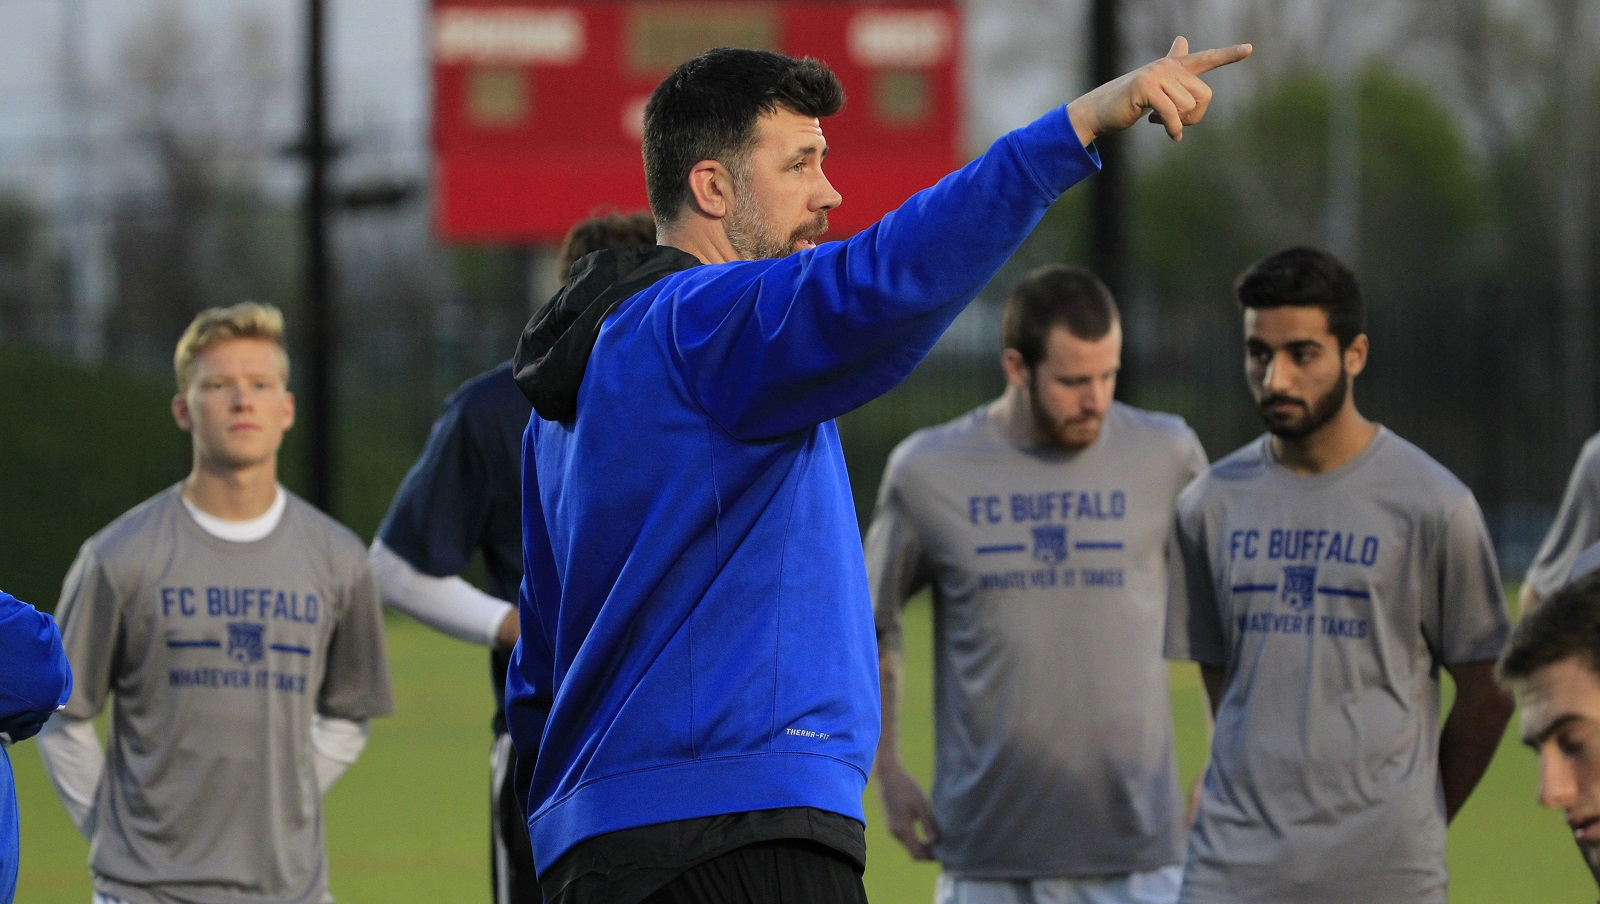 Head coach Brendan Murphy instructs during a training session. (Harry Scull Jr./Buffalo News)